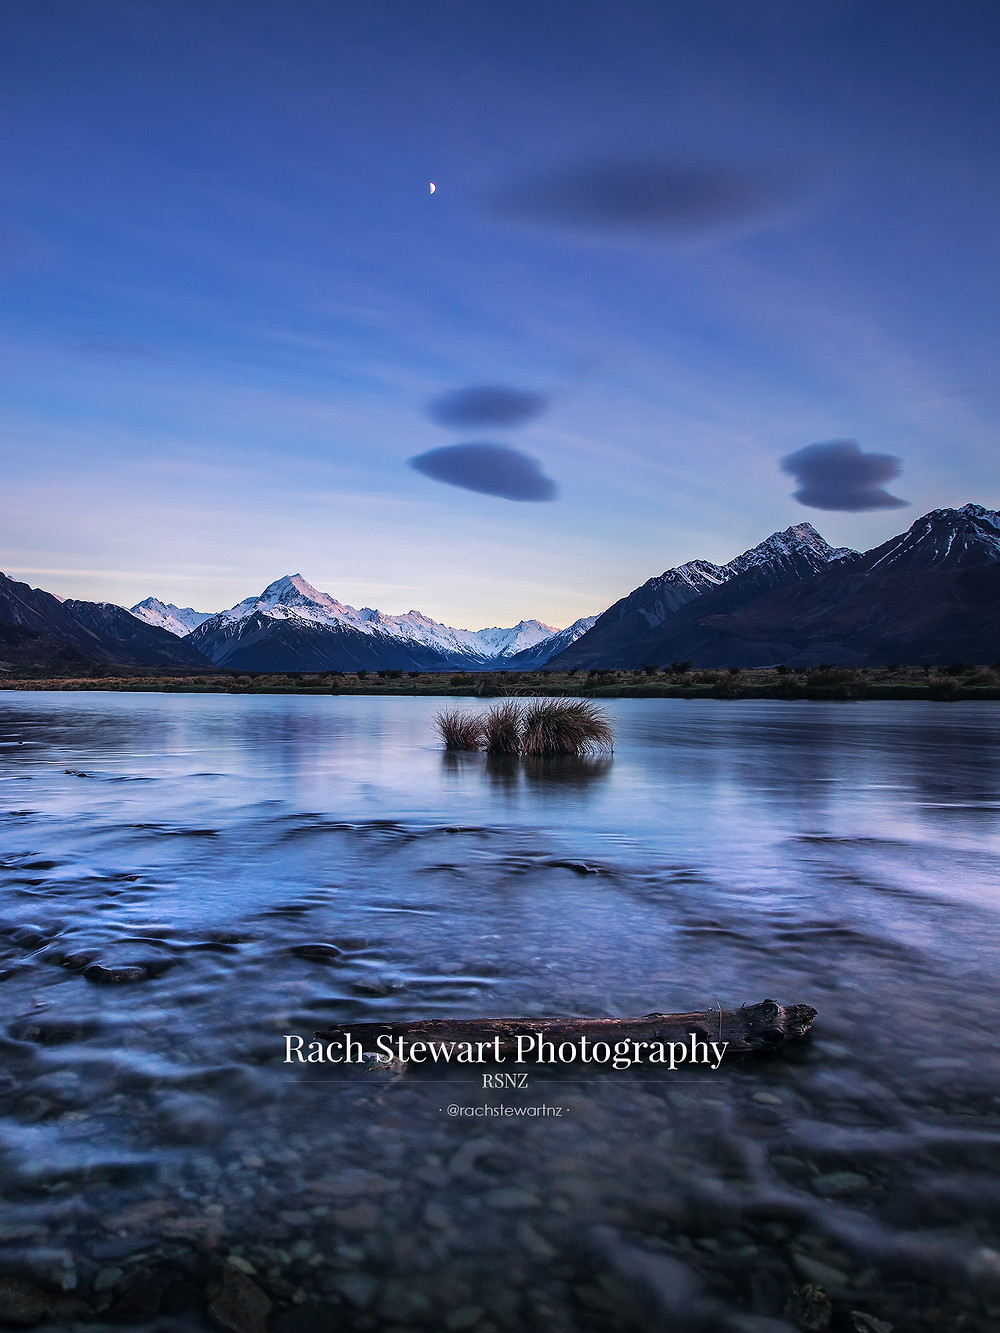 Mount Cook and the Pukaki river bank